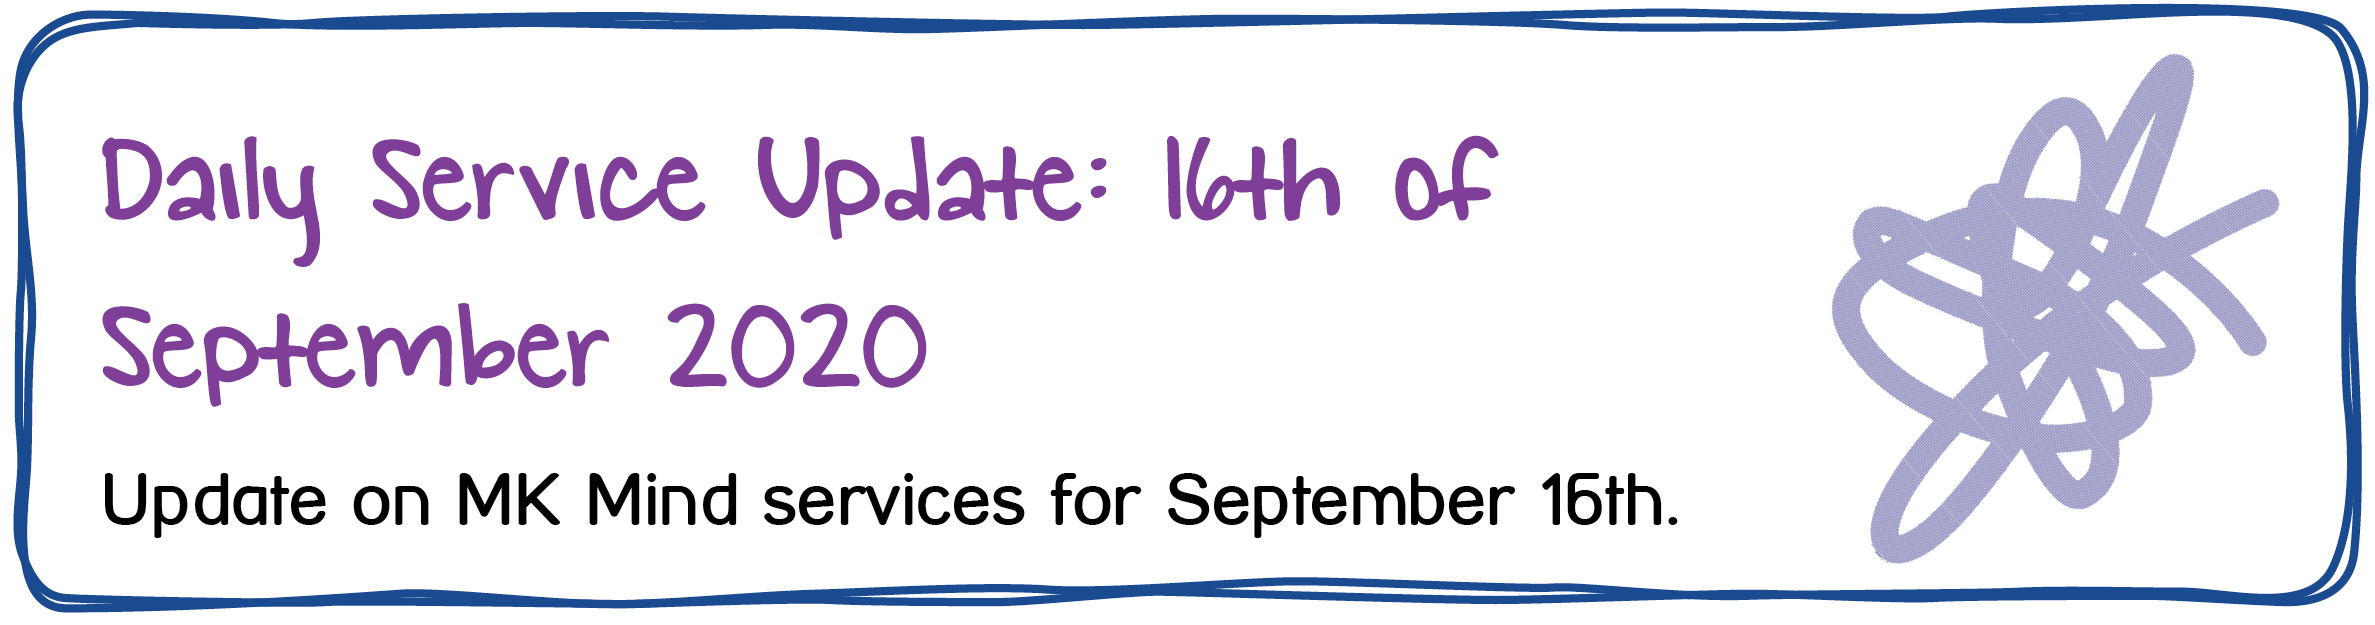 Daily Service Update: 16th of September 2020. Update on Mid Kent Mind services for September 16th.